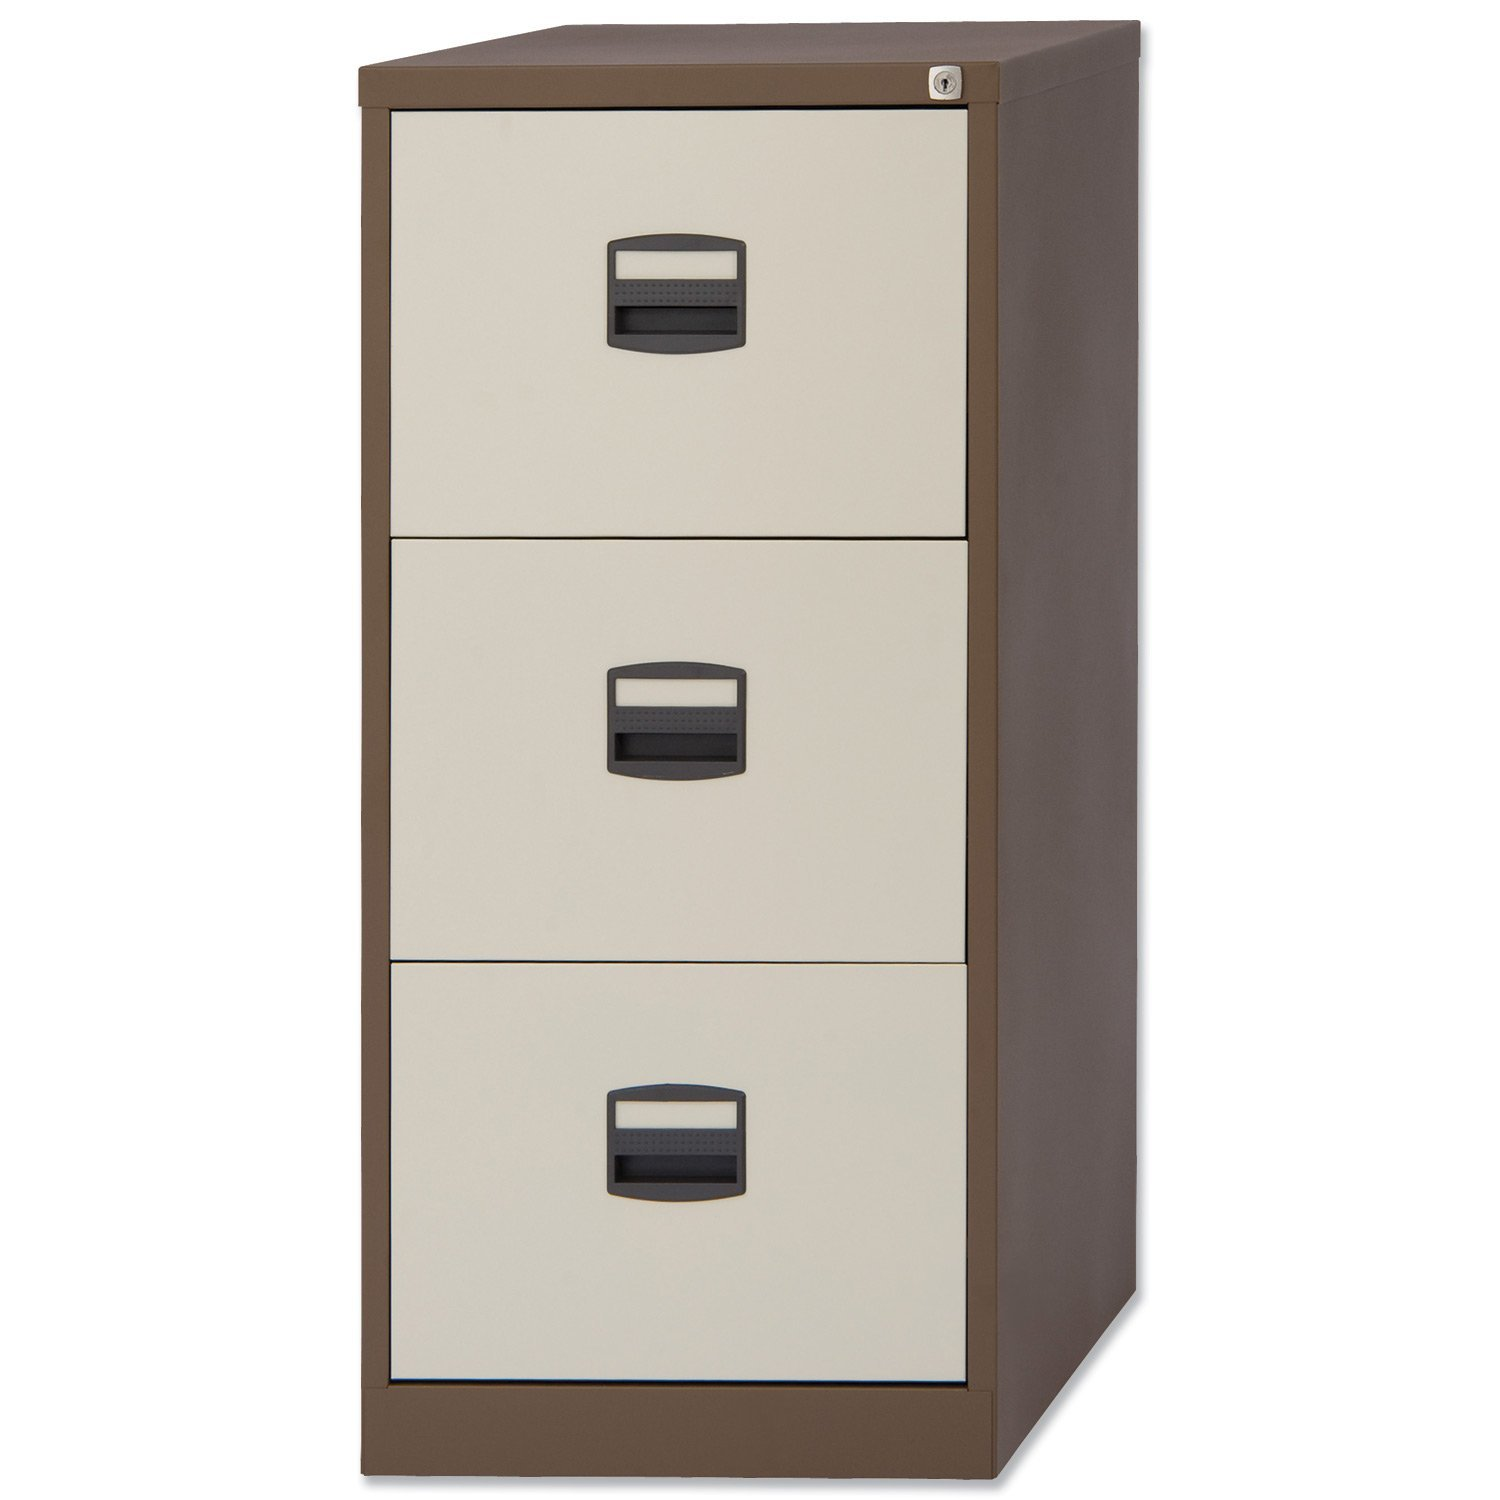 Brilliant Bisley File Cabinet for Best File Storage Ideas: Bisley Furniture | Bisley File Cabinet | Bisley Storage